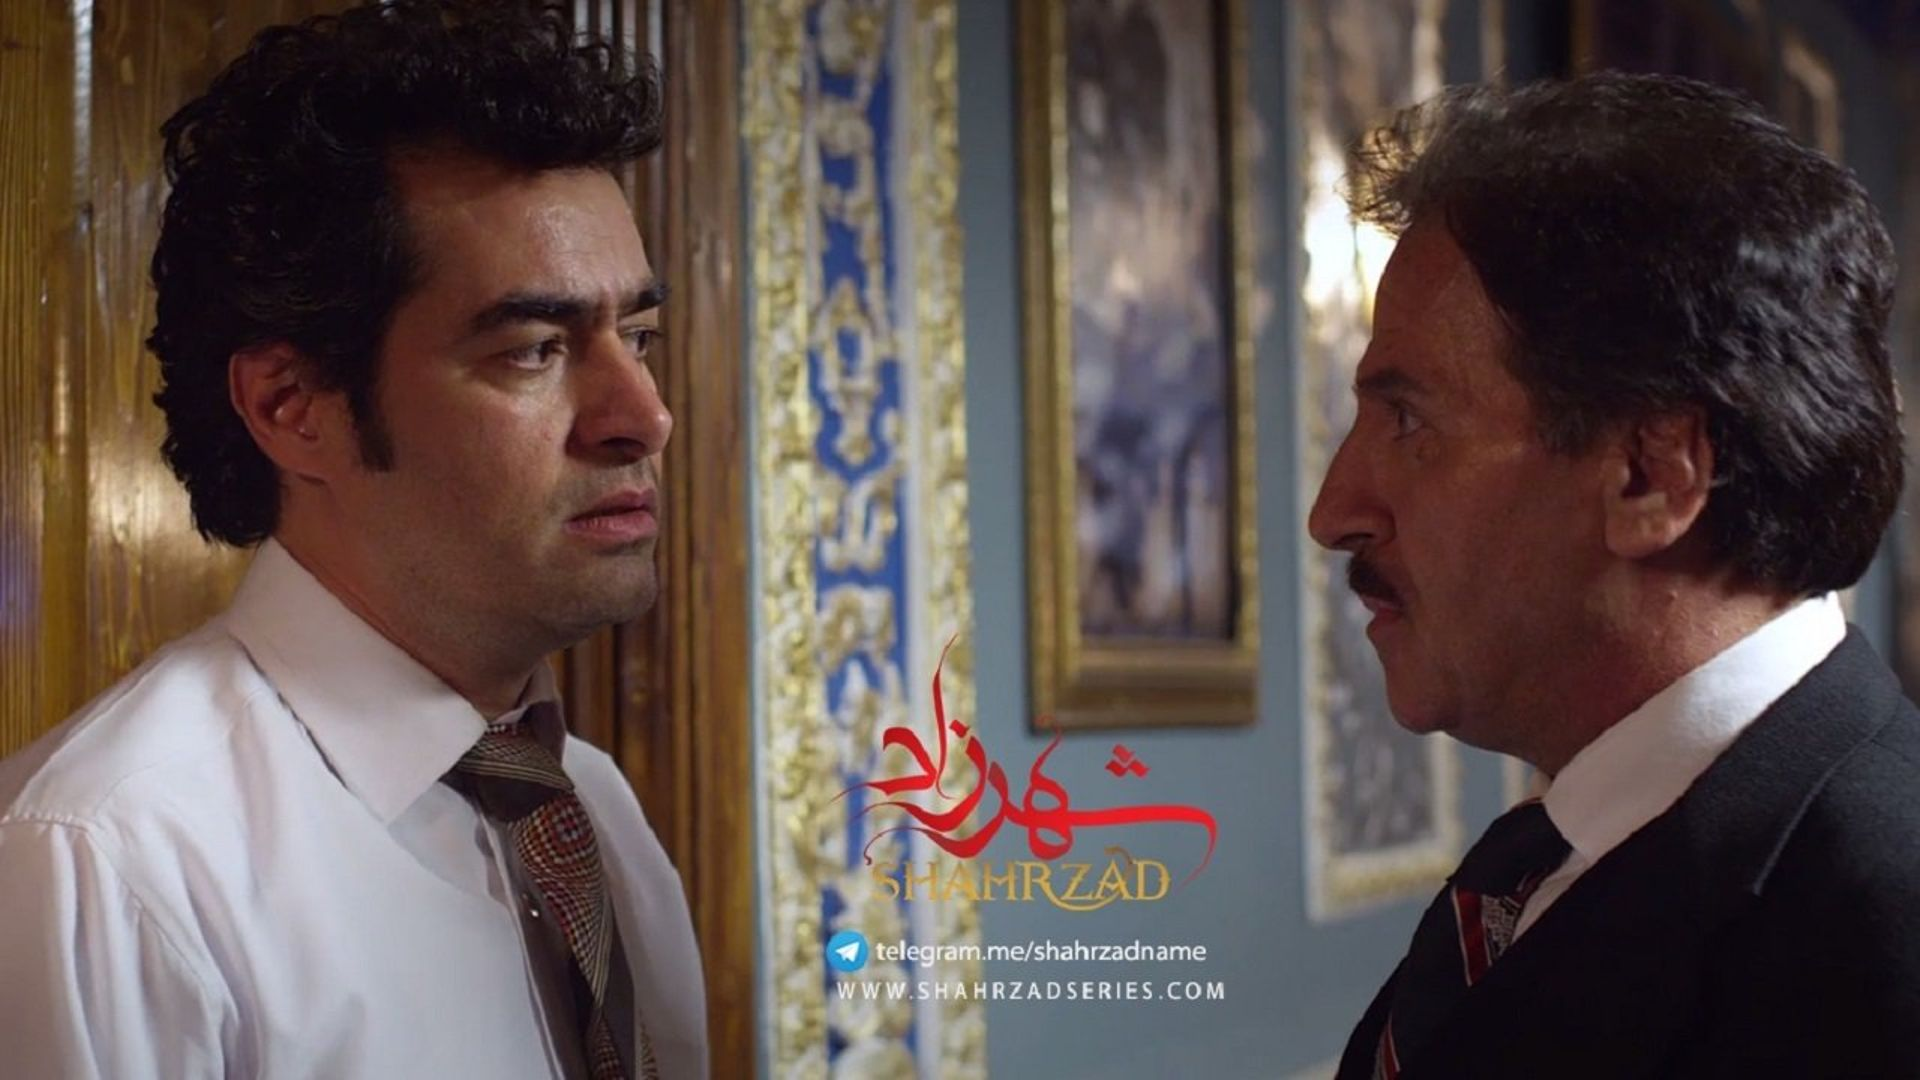 Shahrzad Season 1: Where To Watch Every Episode | Reelgood